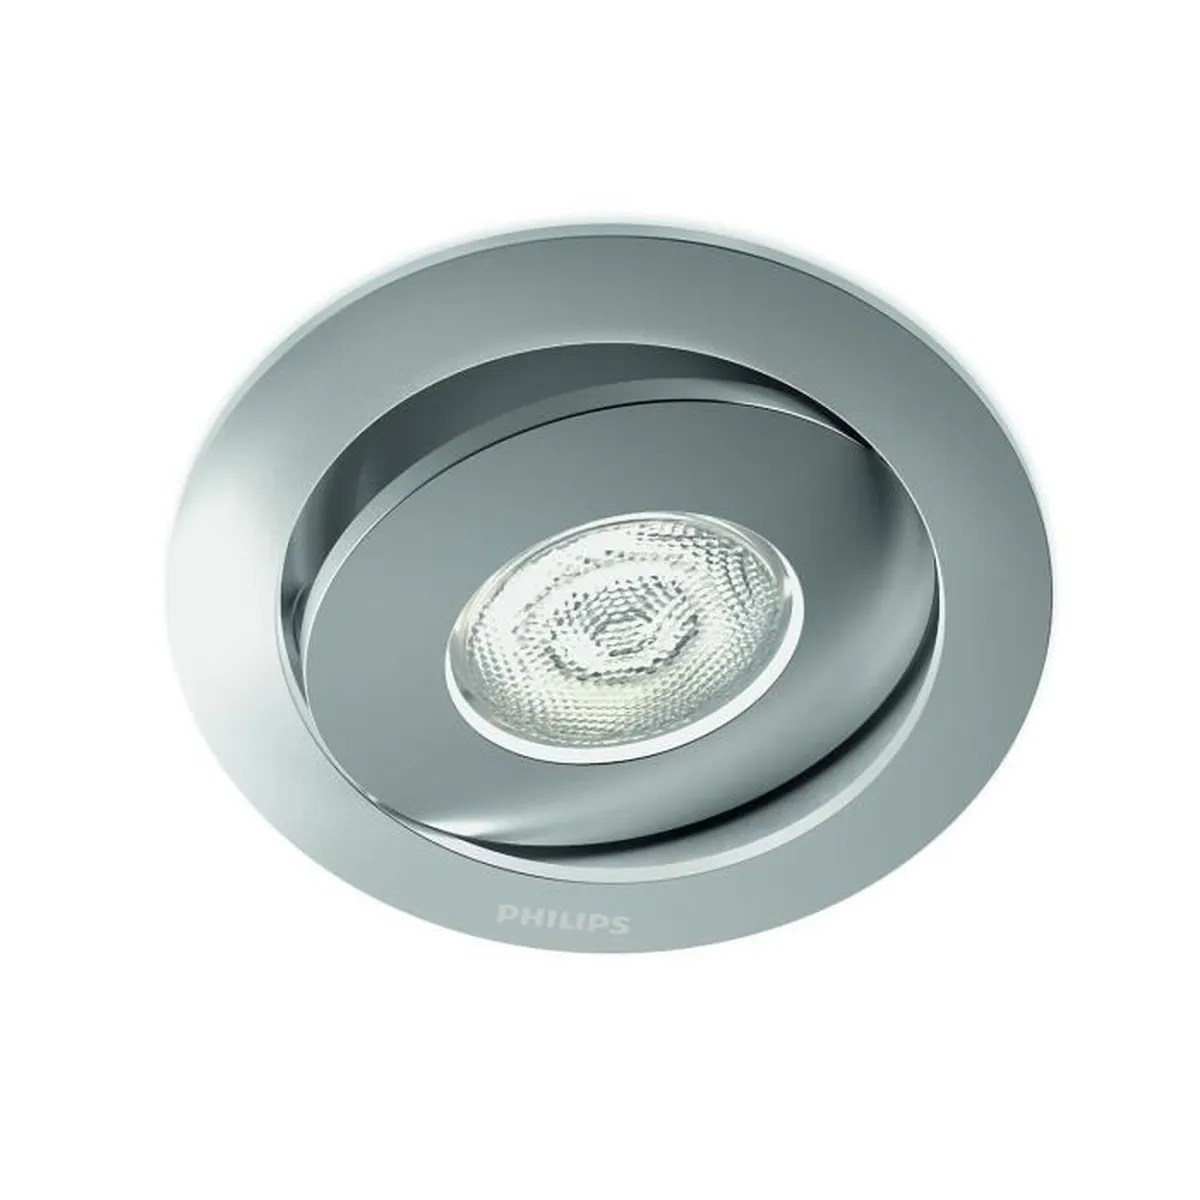 Spot A Encastrable Philips 591804816 Spot Encastrable Led Asterope Aluminium